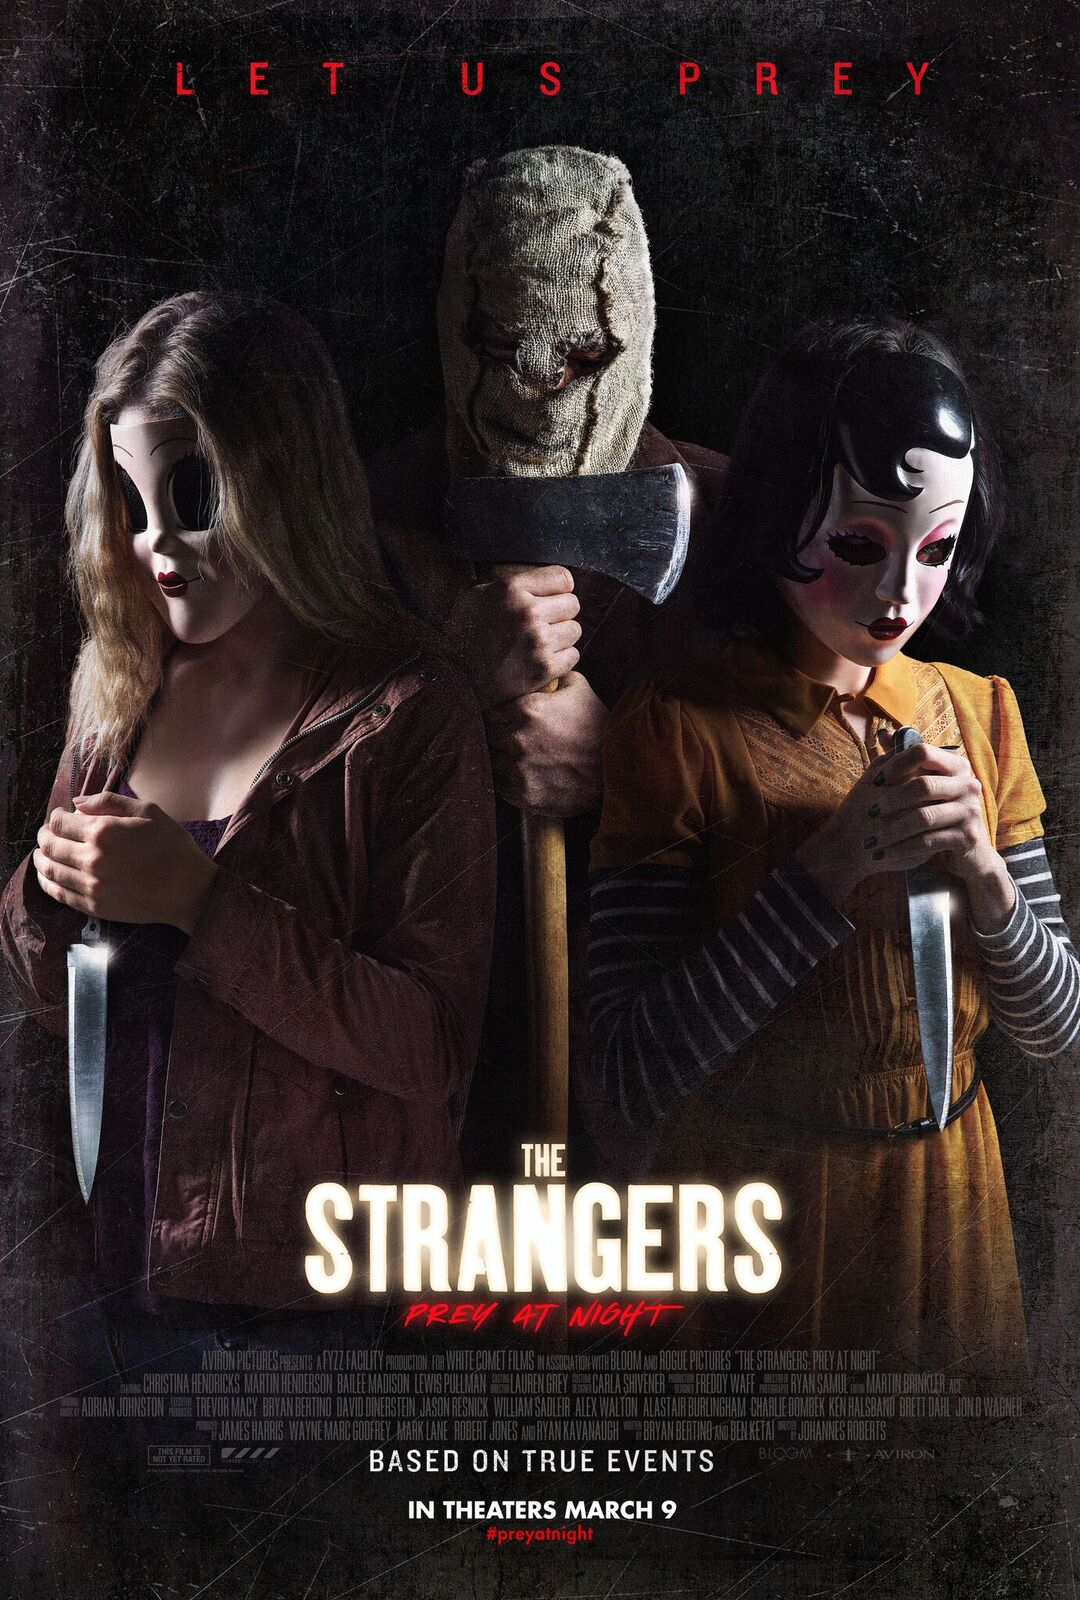 TheStrangersPreyAtNight-poster_preview.jpeg